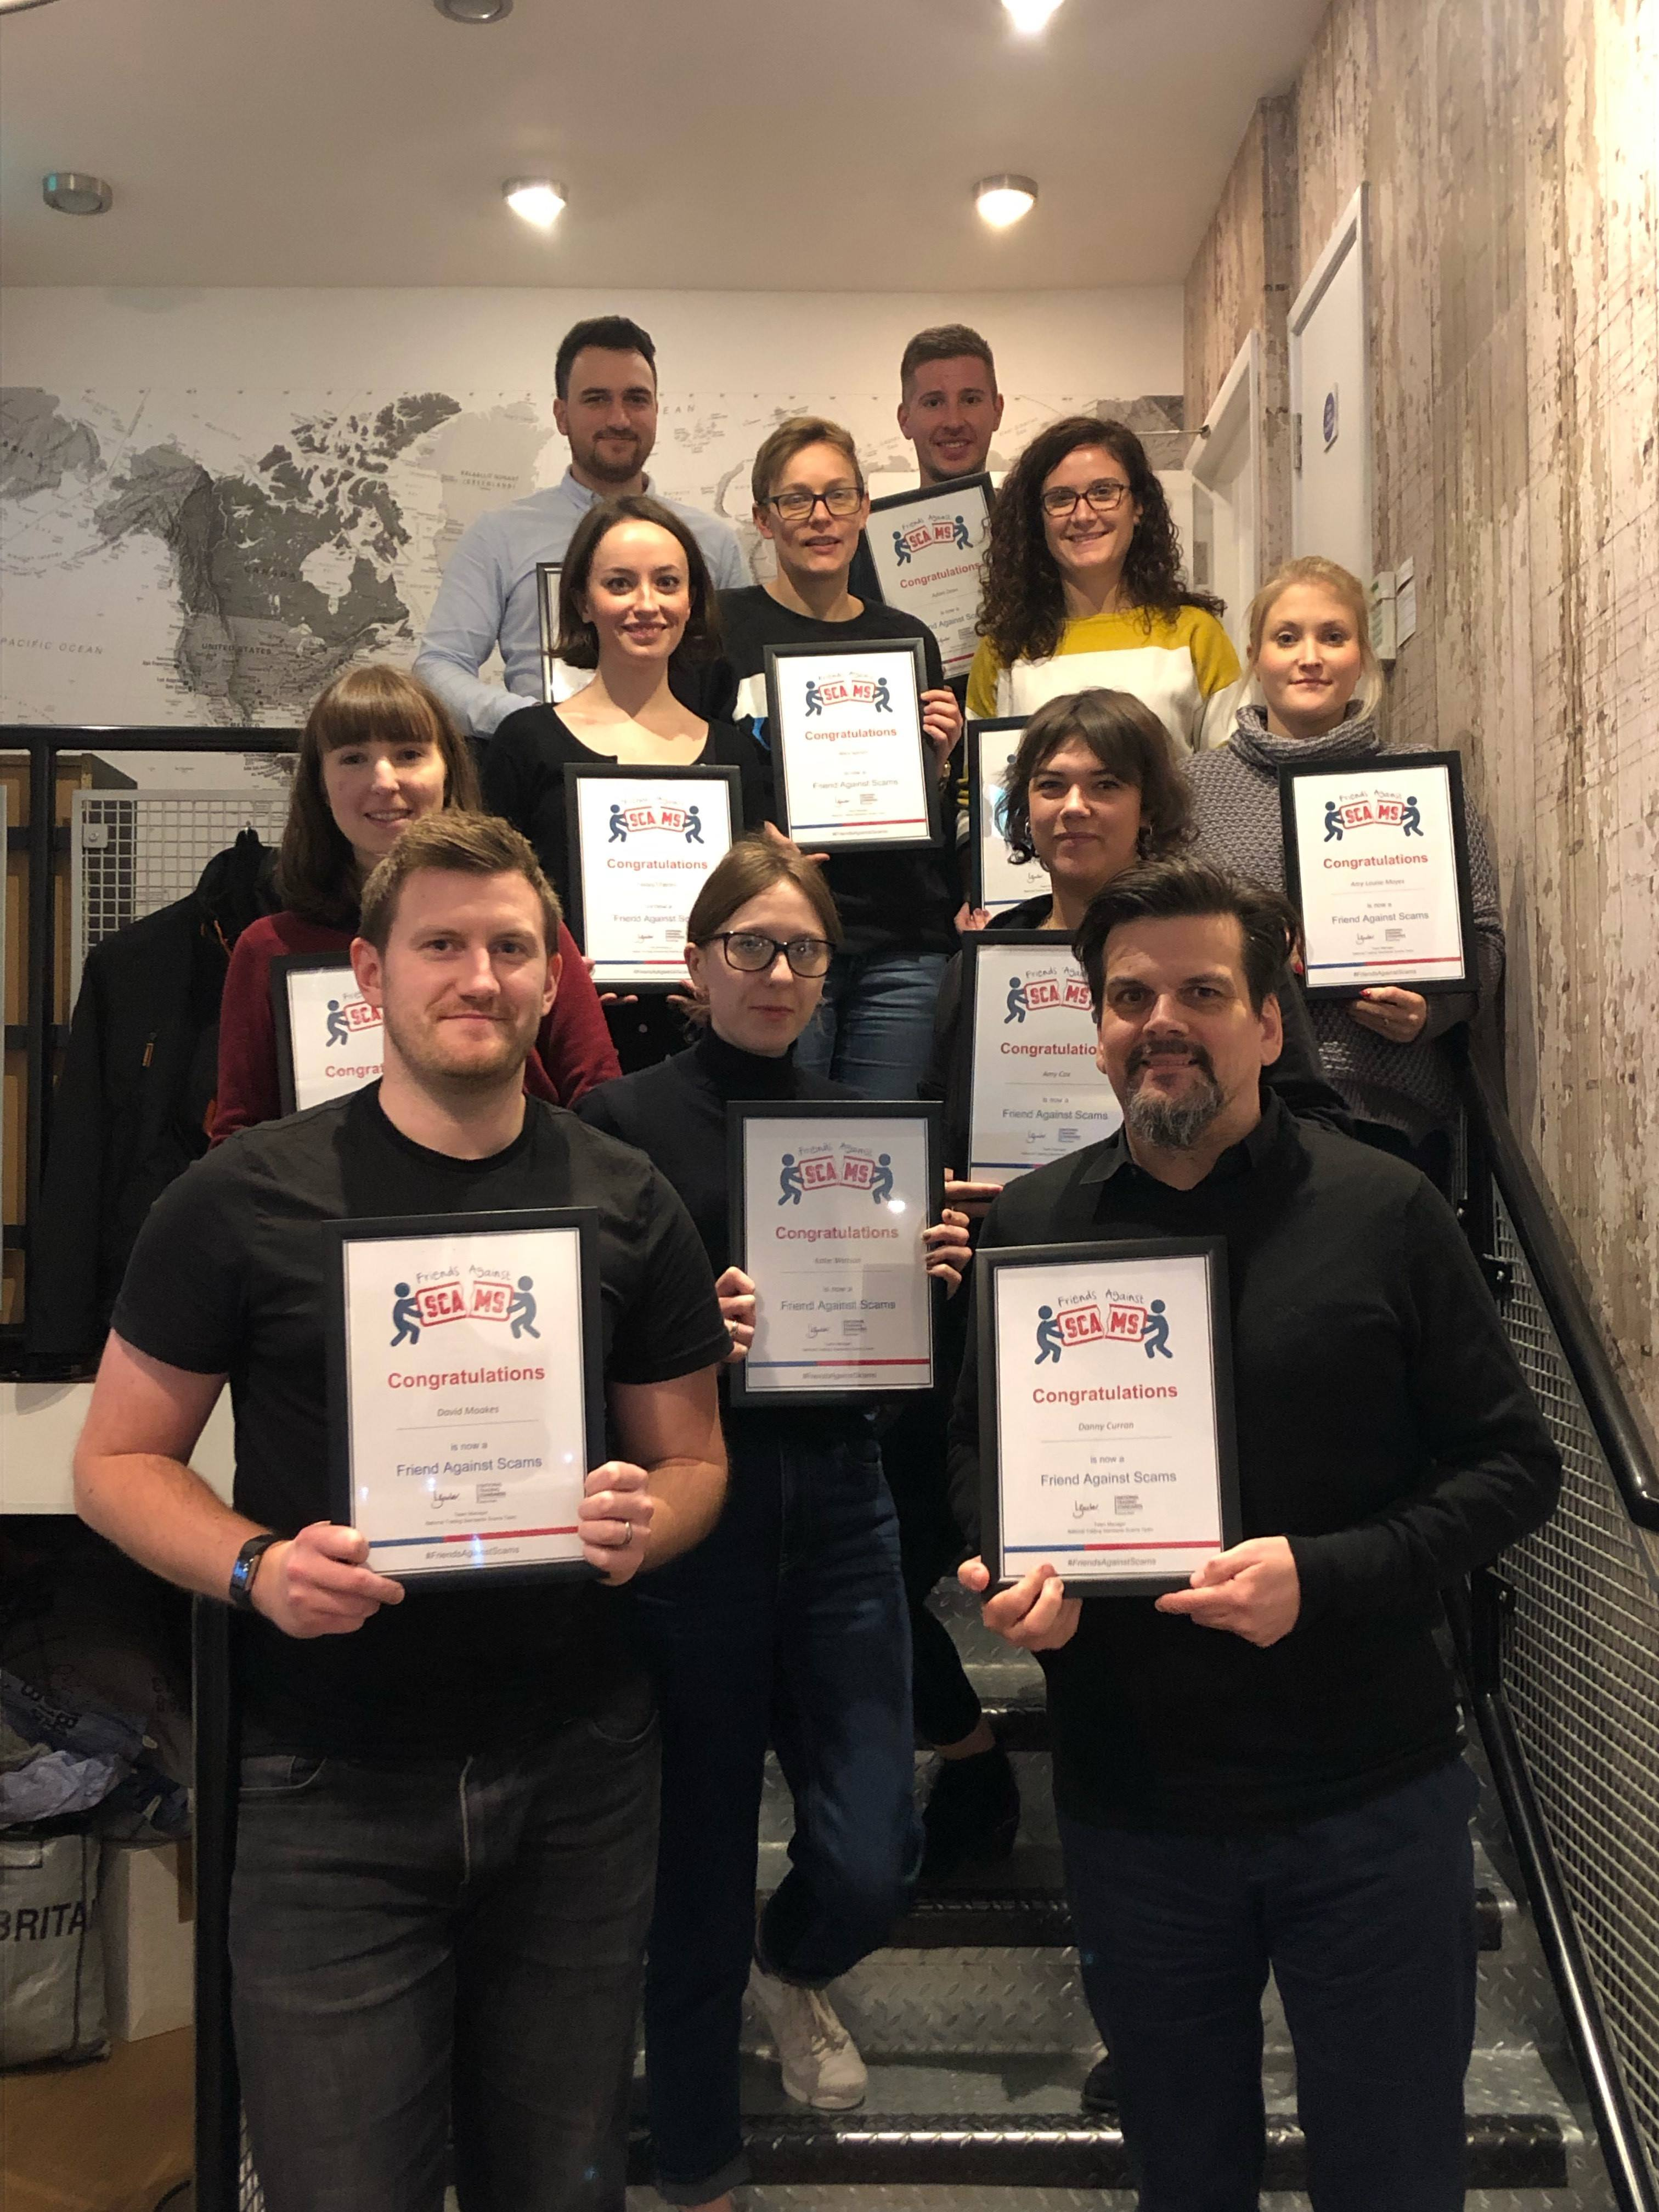 Finders International - Friends Against Scams Certification